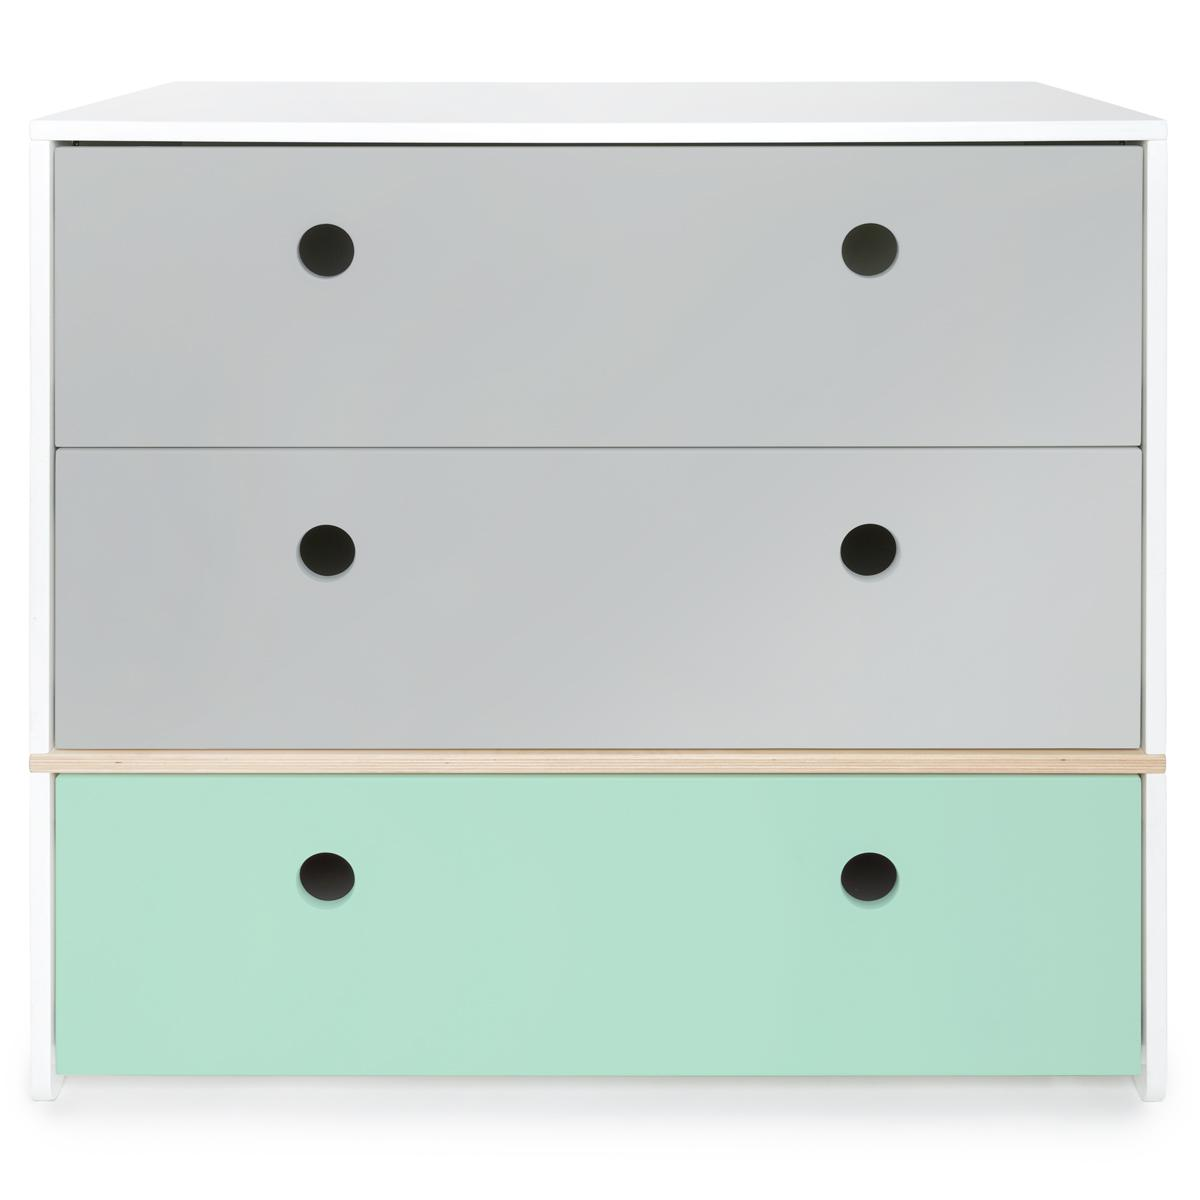 Commode COLORFLEX Abitare Kids façades tiroirs pearl grey-pearl grey-mint